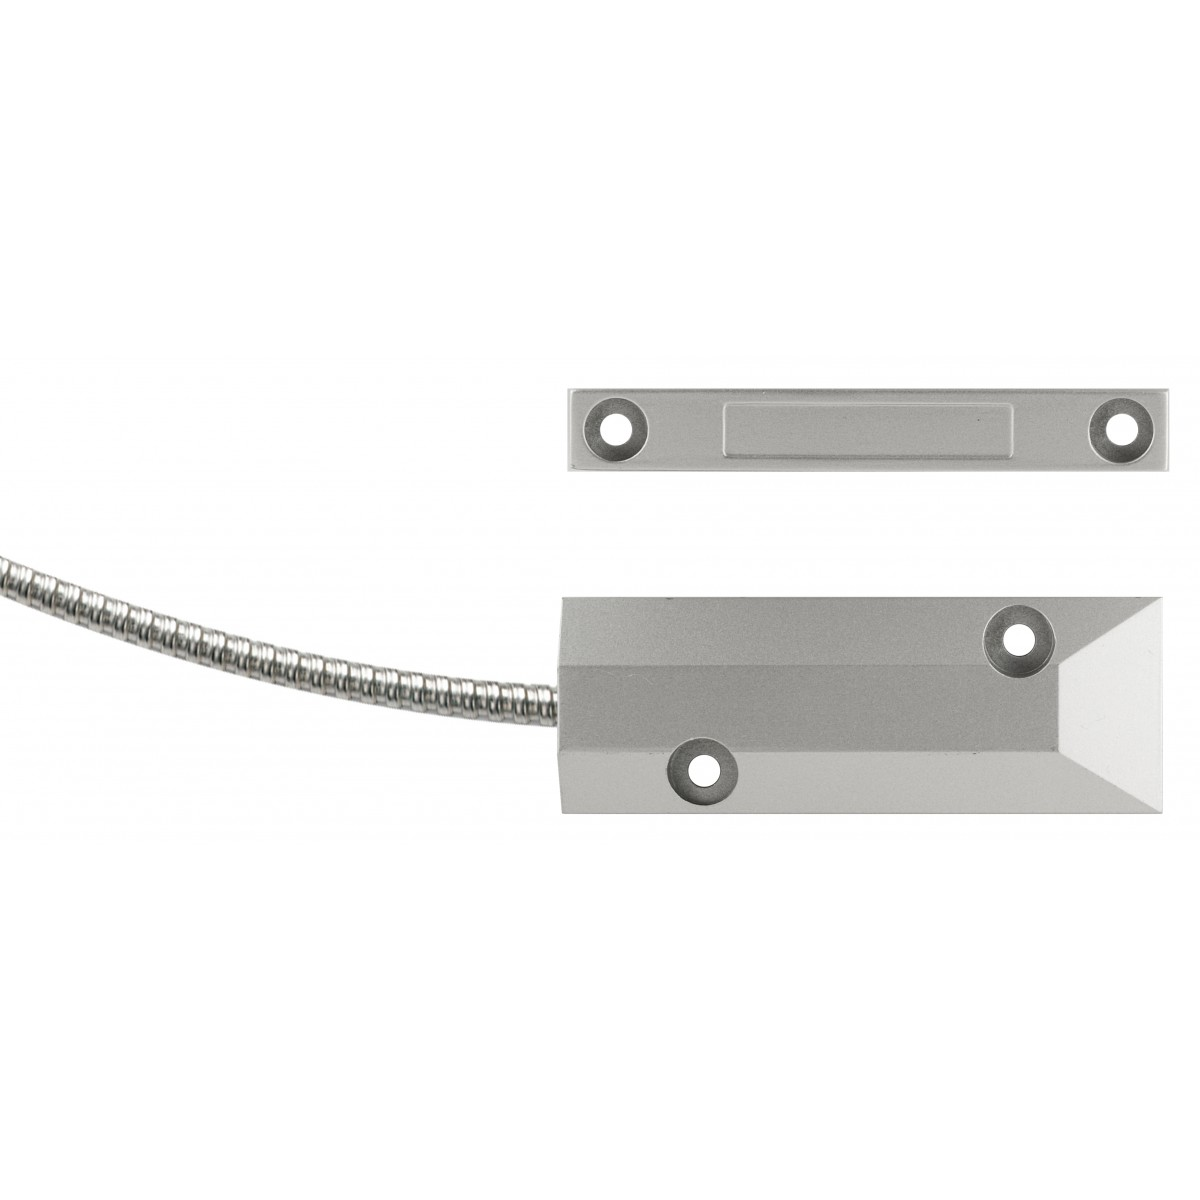 Alarm Accessories - 5C-55ZL Industrial Roller Shutter Contact Security Reed Swit